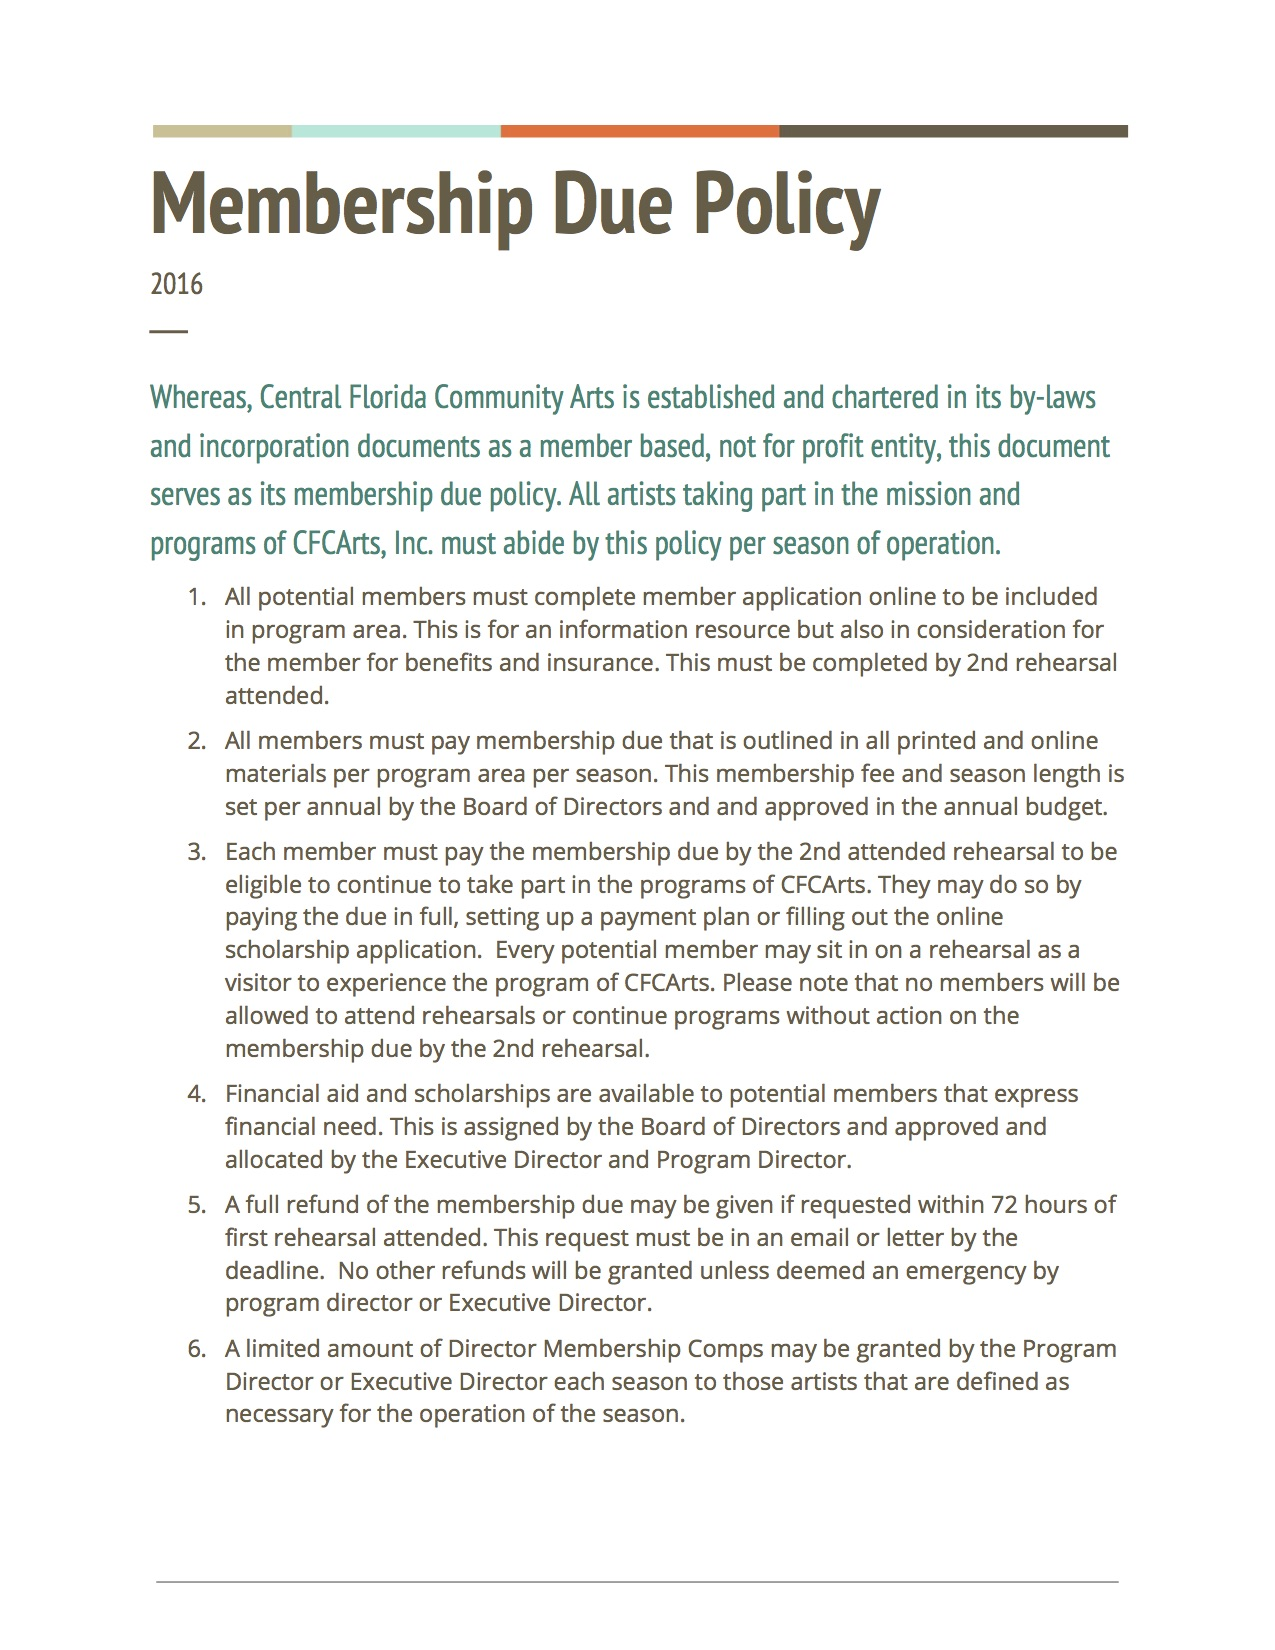 MembershipDuePolicy-2